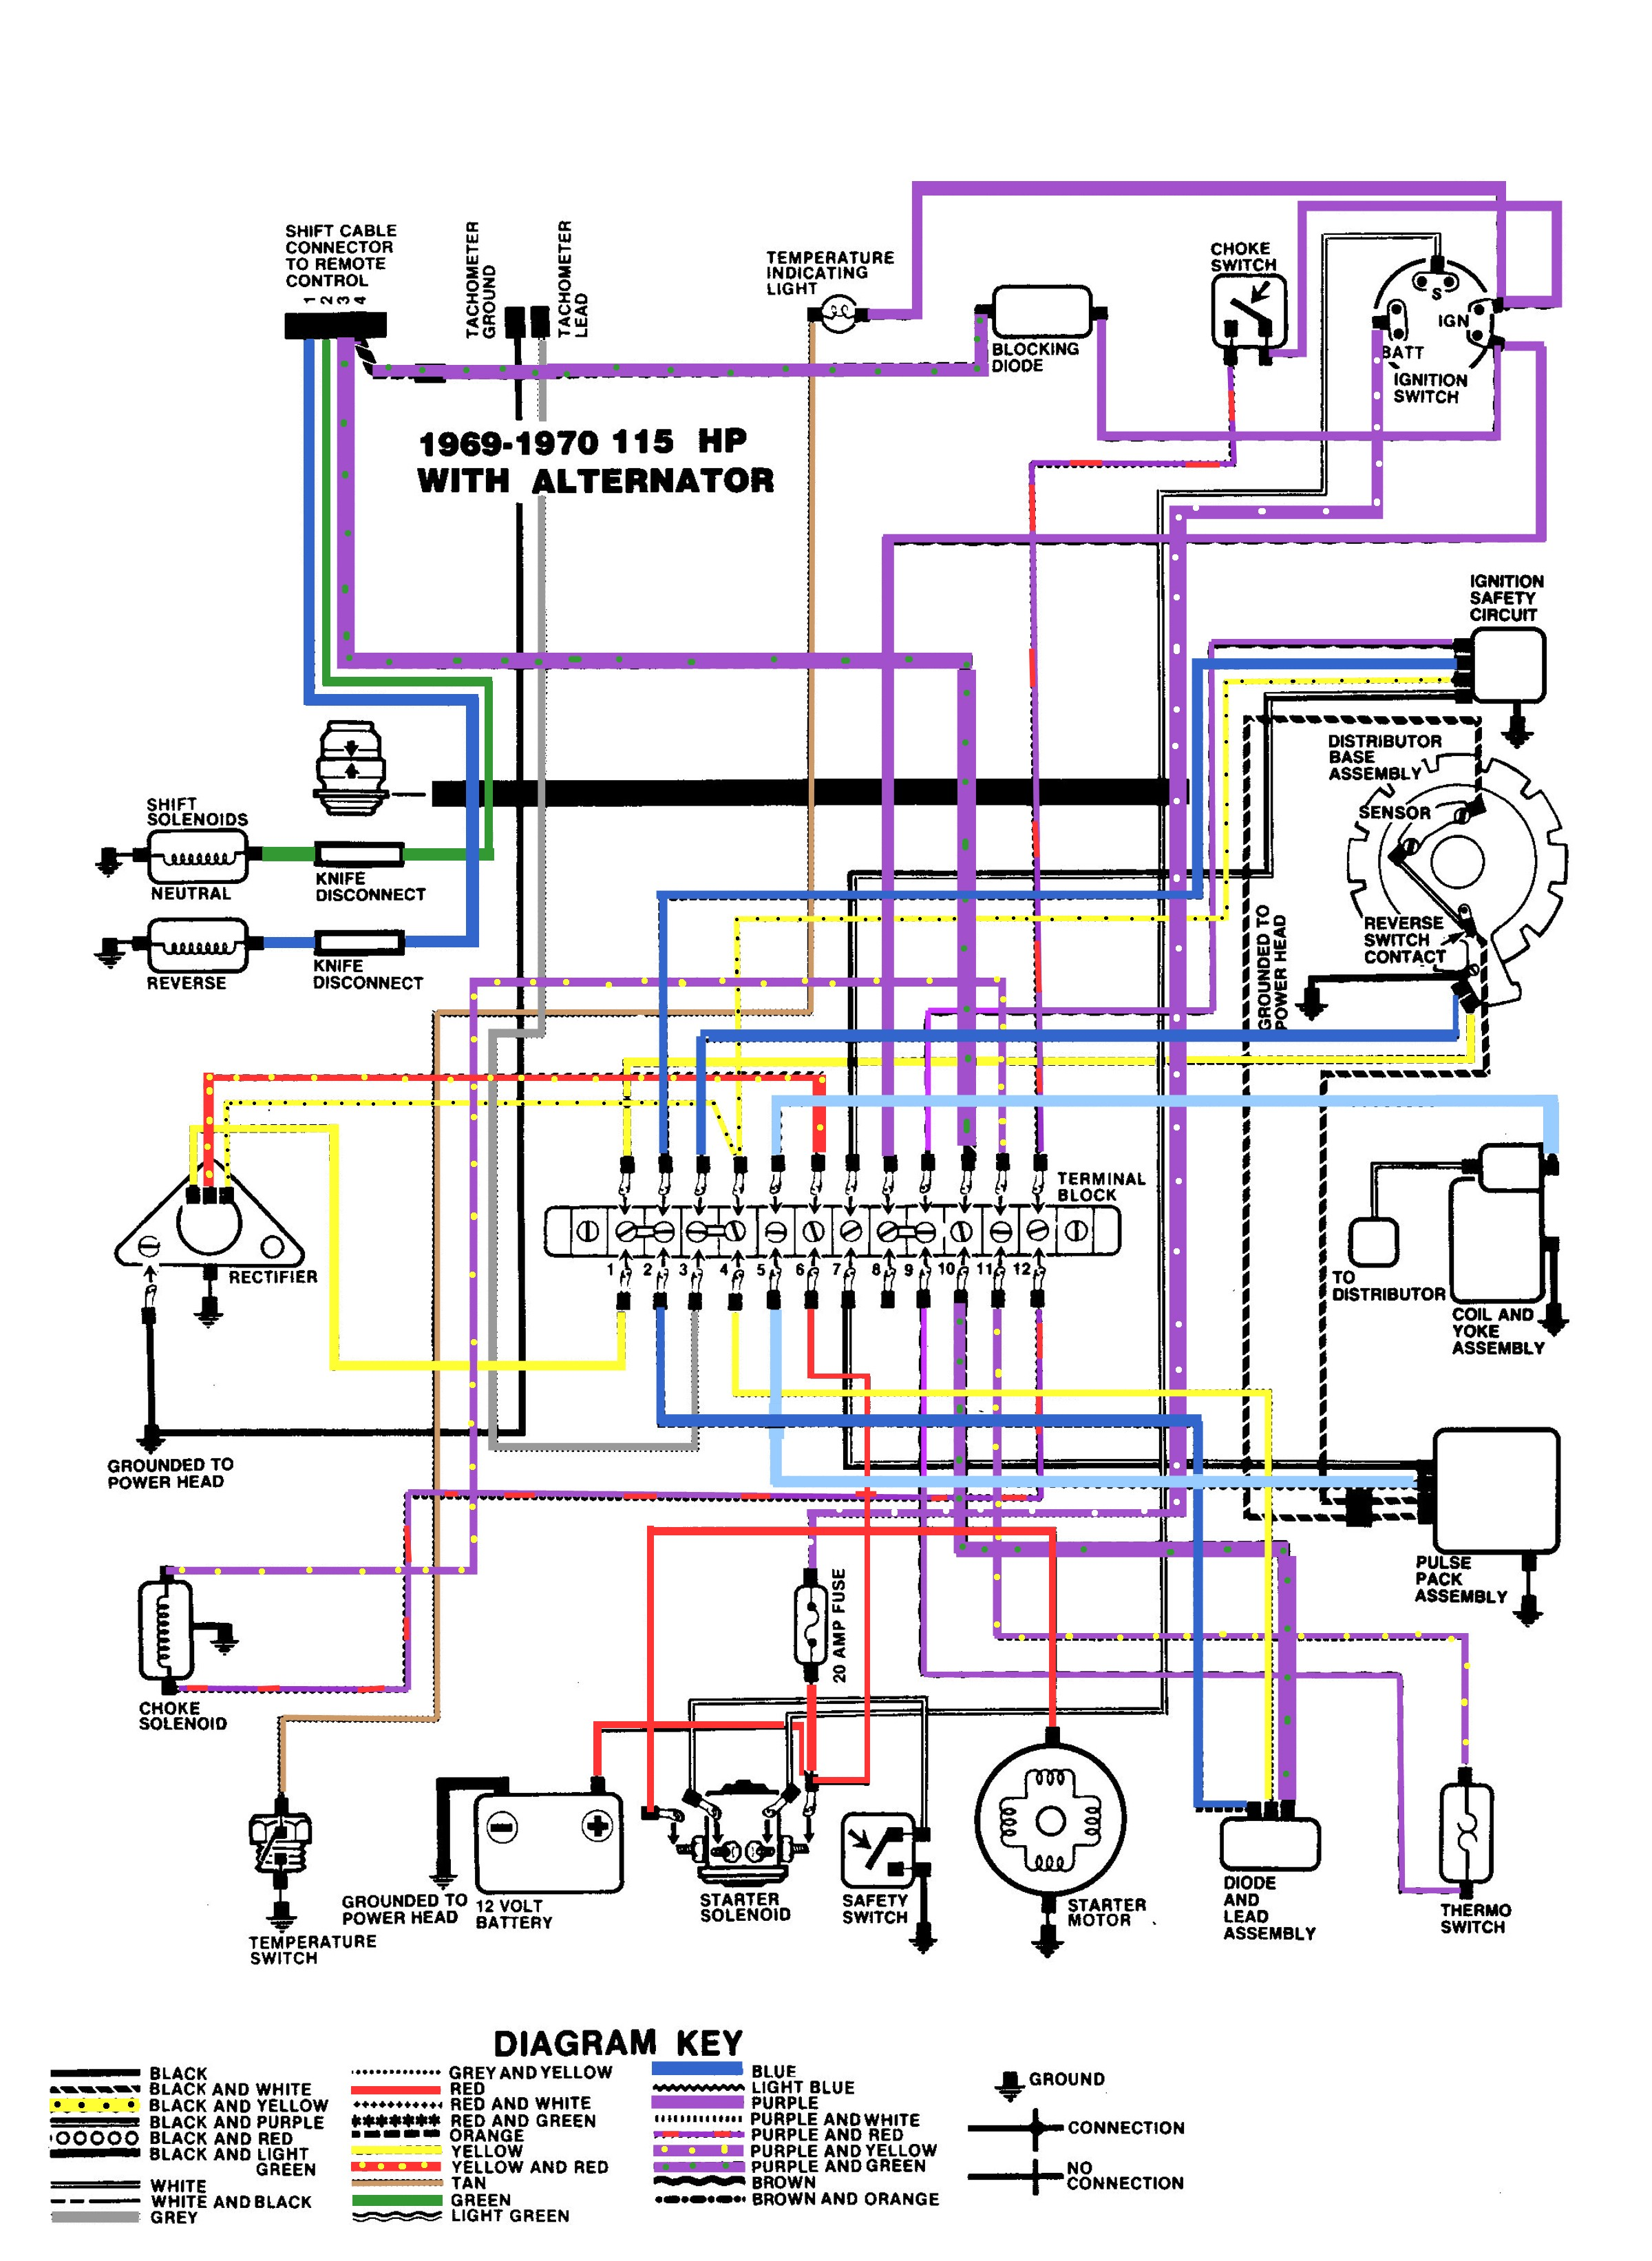 Basic Ignition Wiring Diagram Ignition Coil Condenser Wiring Diagram Mastertopforum Of Basic Ignition Wiring Diagram